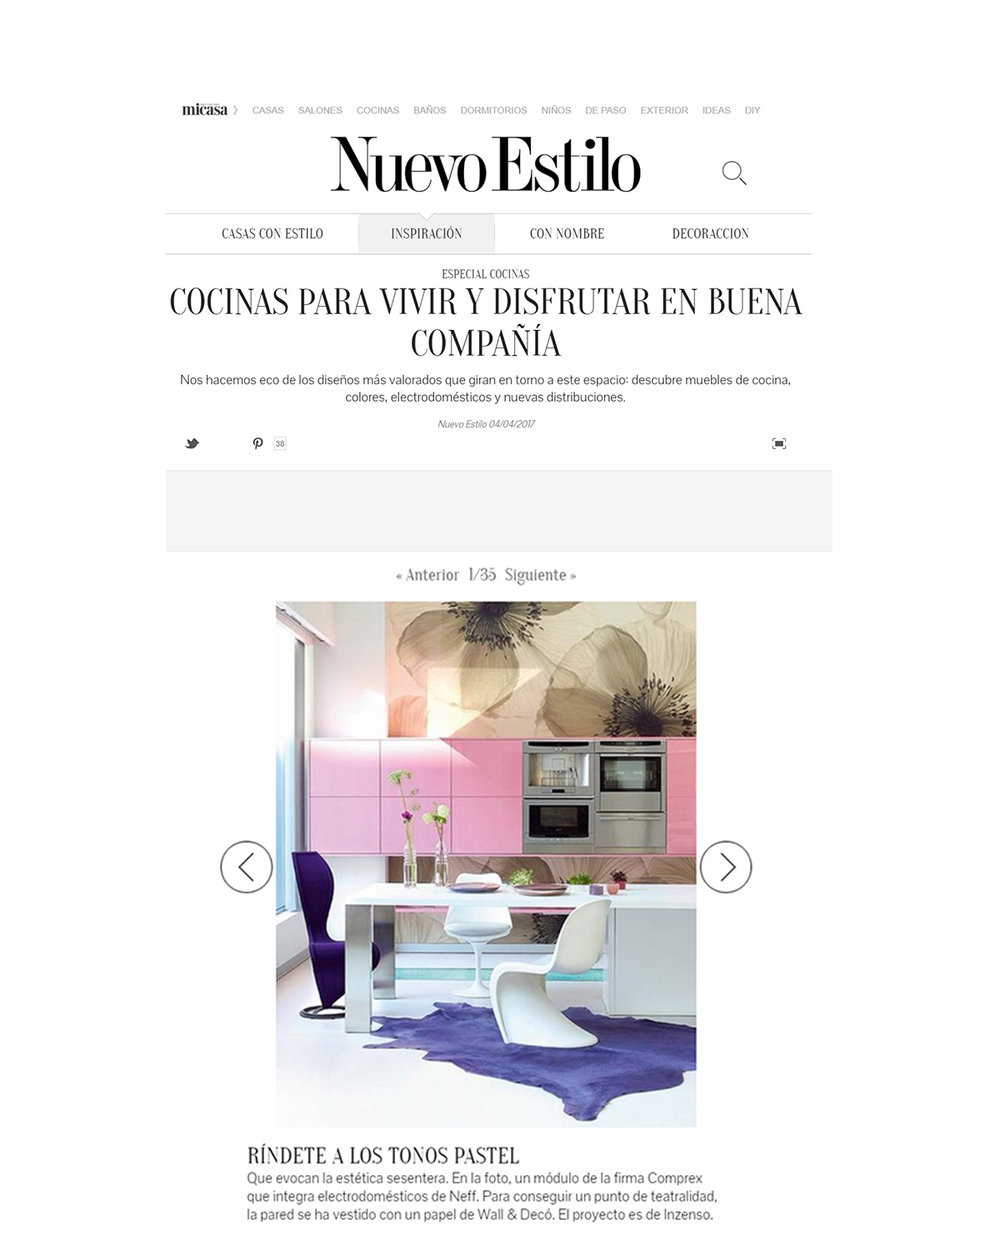 kitchens to live and enjoy in good company   our pink cabinets combined with the mural wallpaper were selected between the best kitchens to enjoy with family and friends by nuevo estilo magazine   read more.